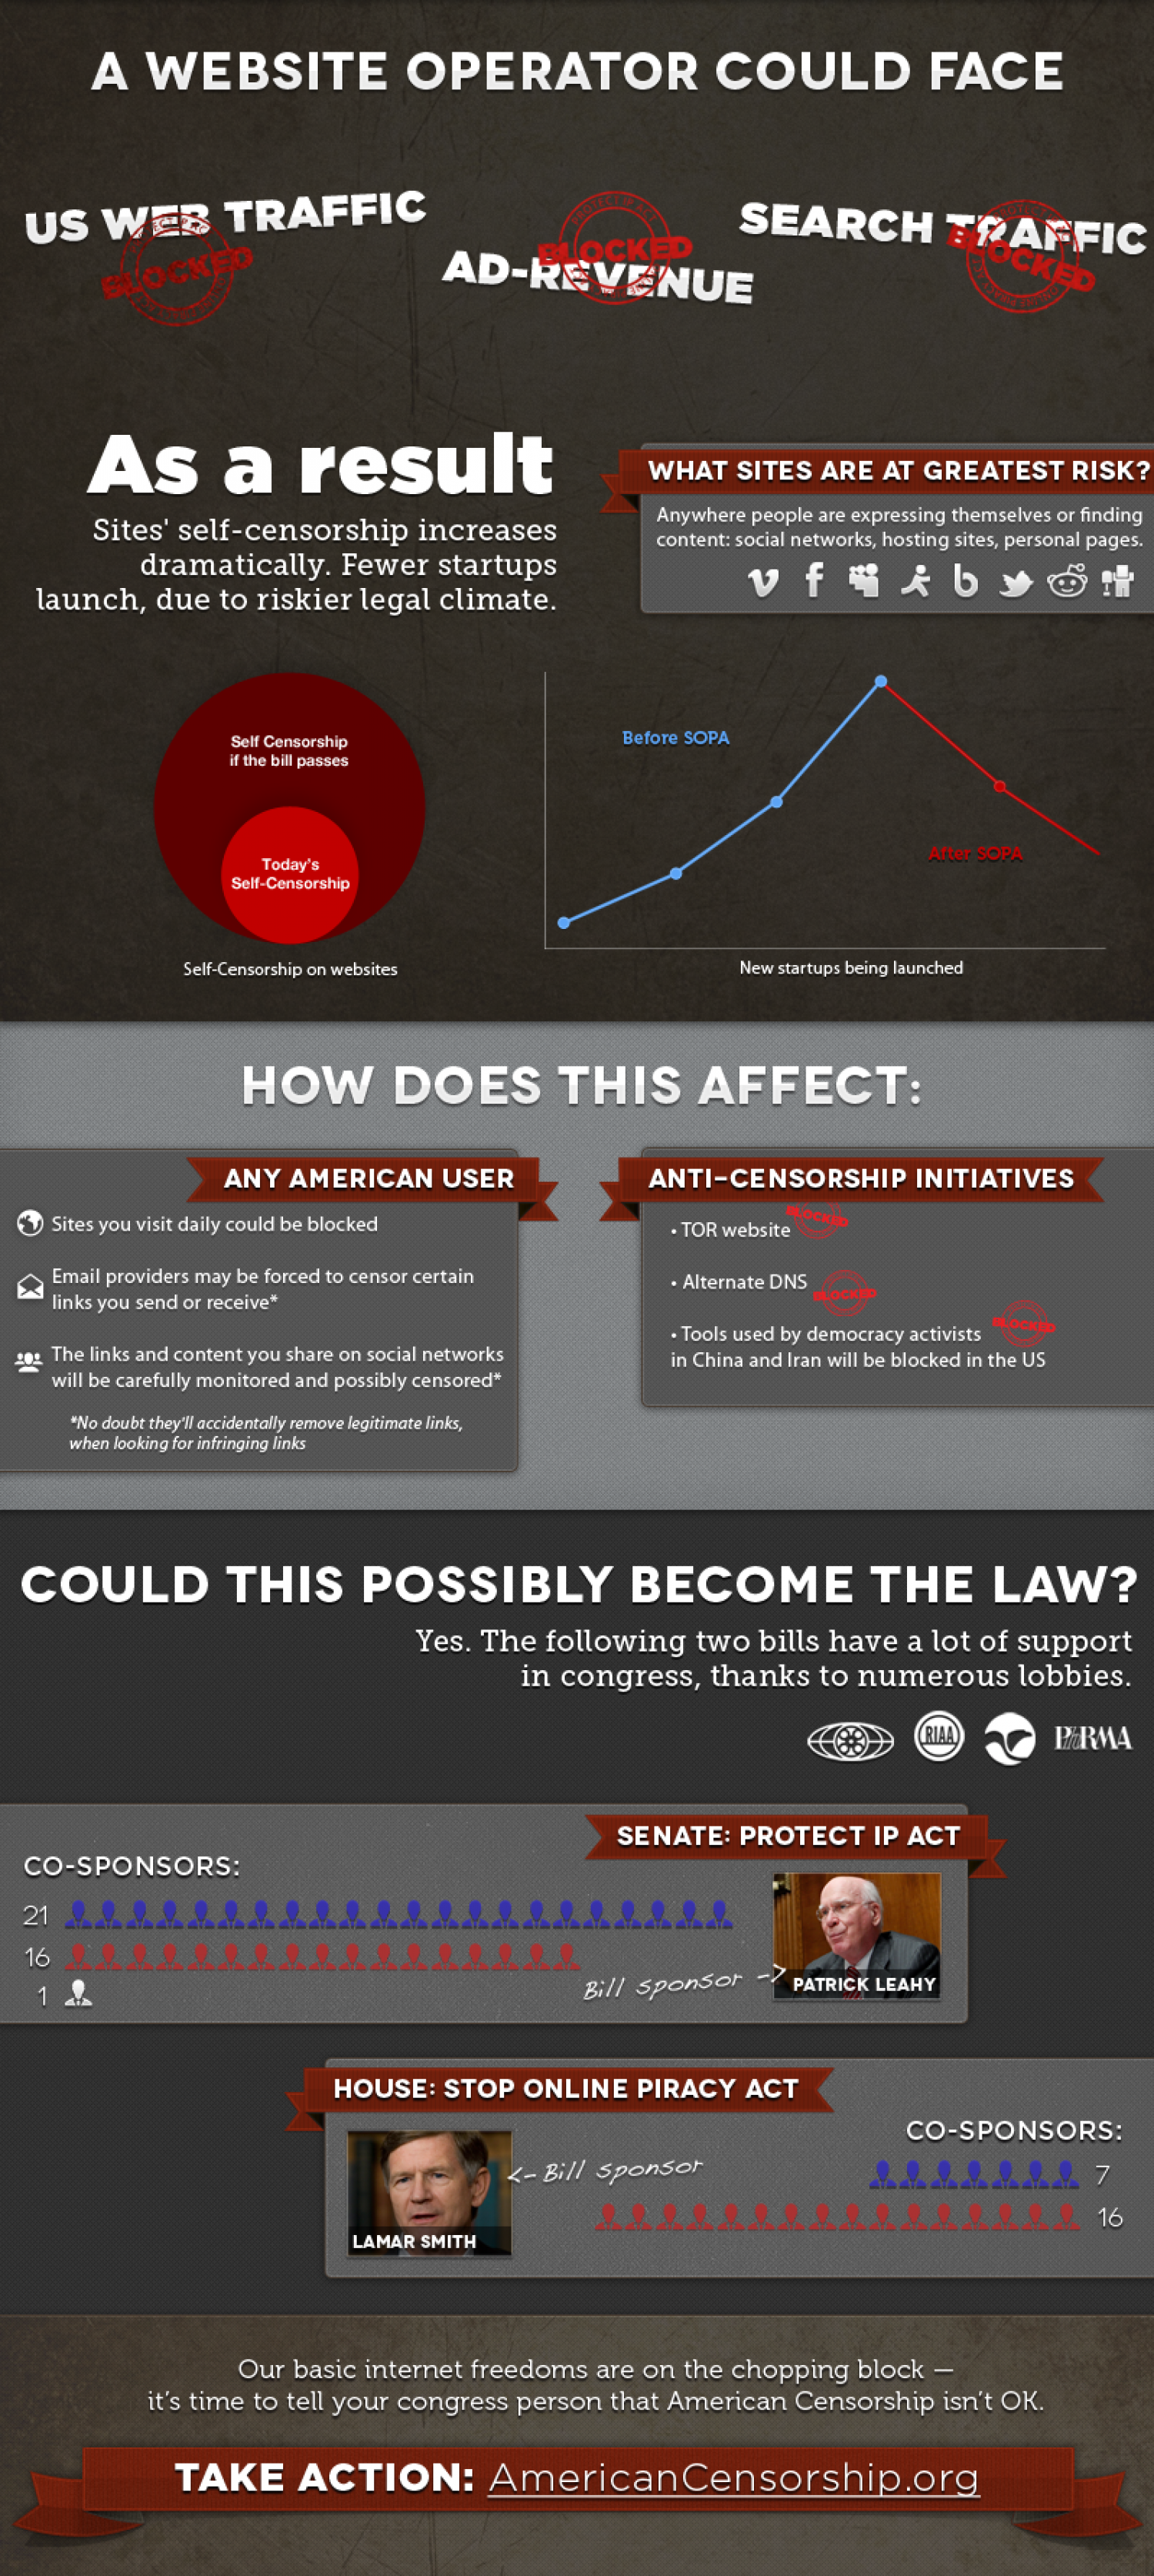 Would the House Online Anti-Piracy Bill Lead to Internet Censorship? Infographic